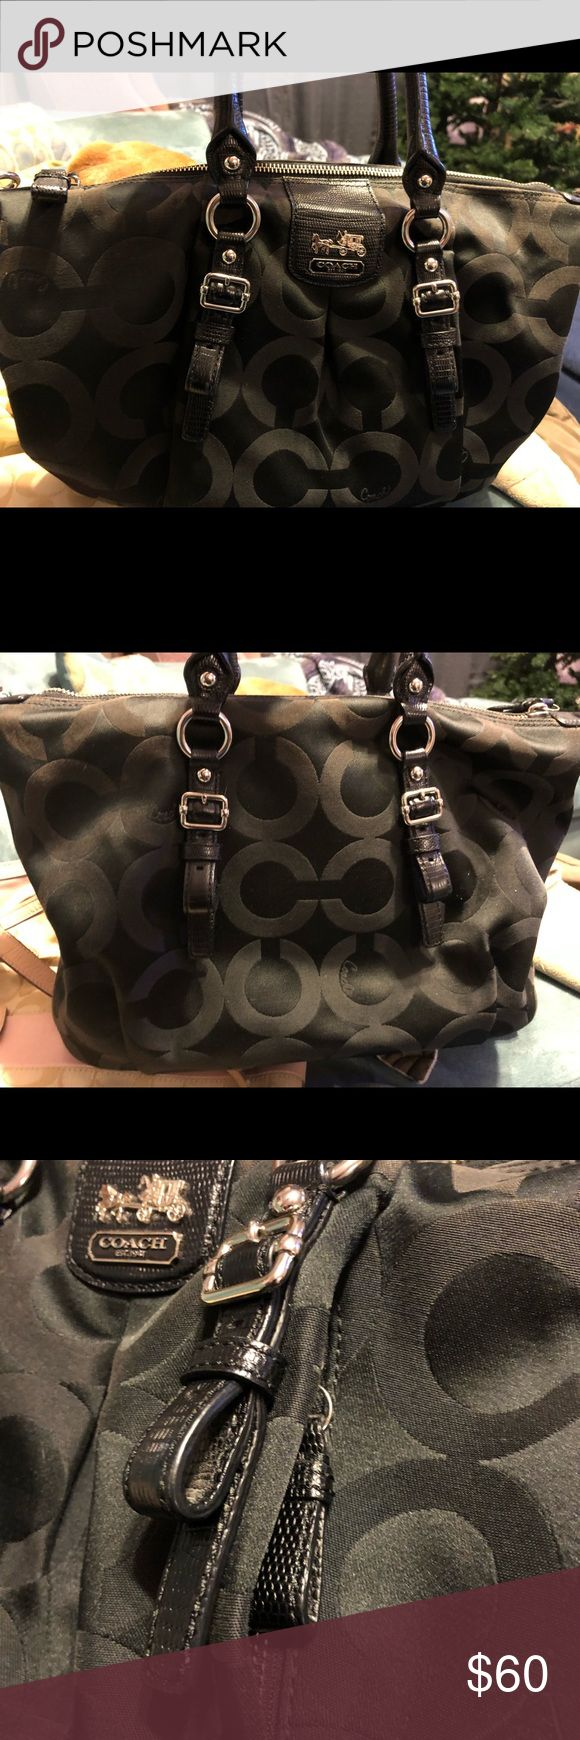 Black Coach Purse Used Black Coach purse, had for a while and had a few spots inside the purse per the pics. Coach Other